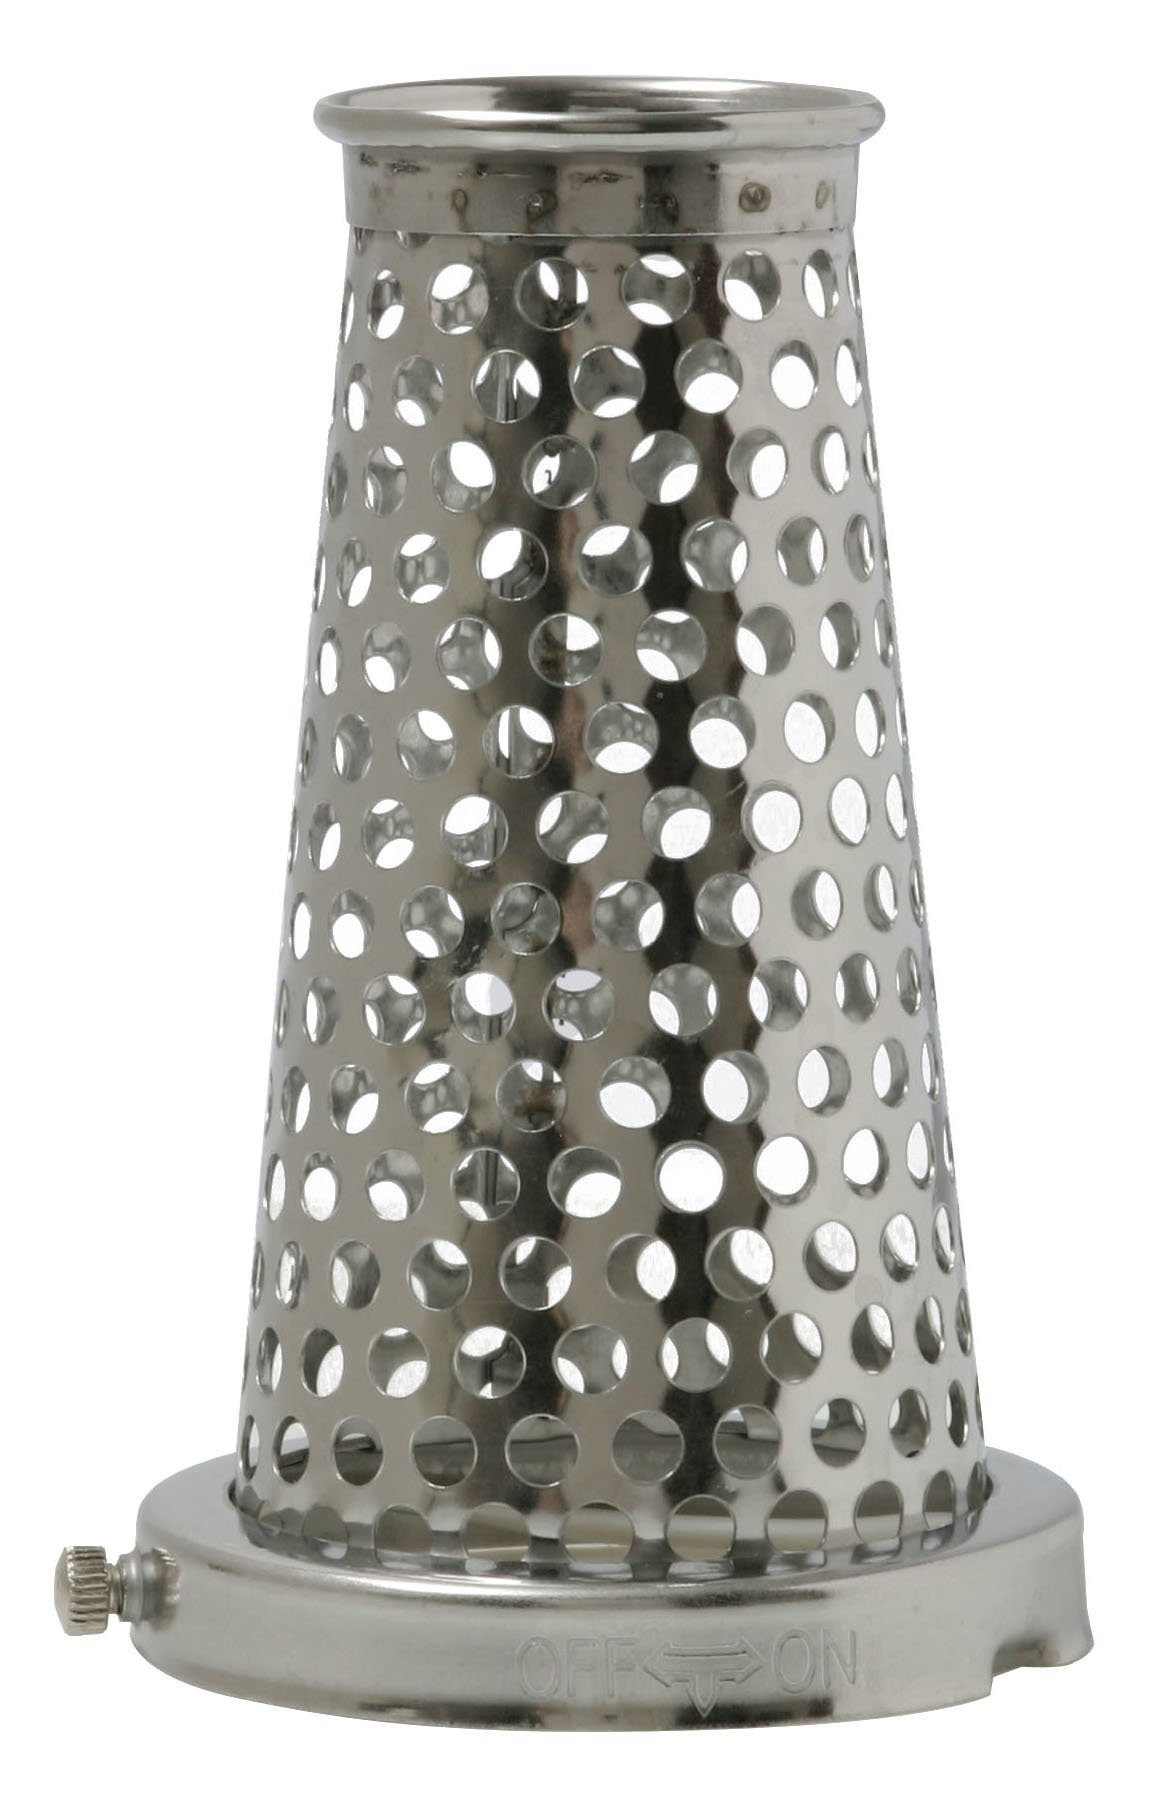 Stainless Steel Salsa Screen Accessory for VKP250 Food Strainer by VICTORIO VKP250-3